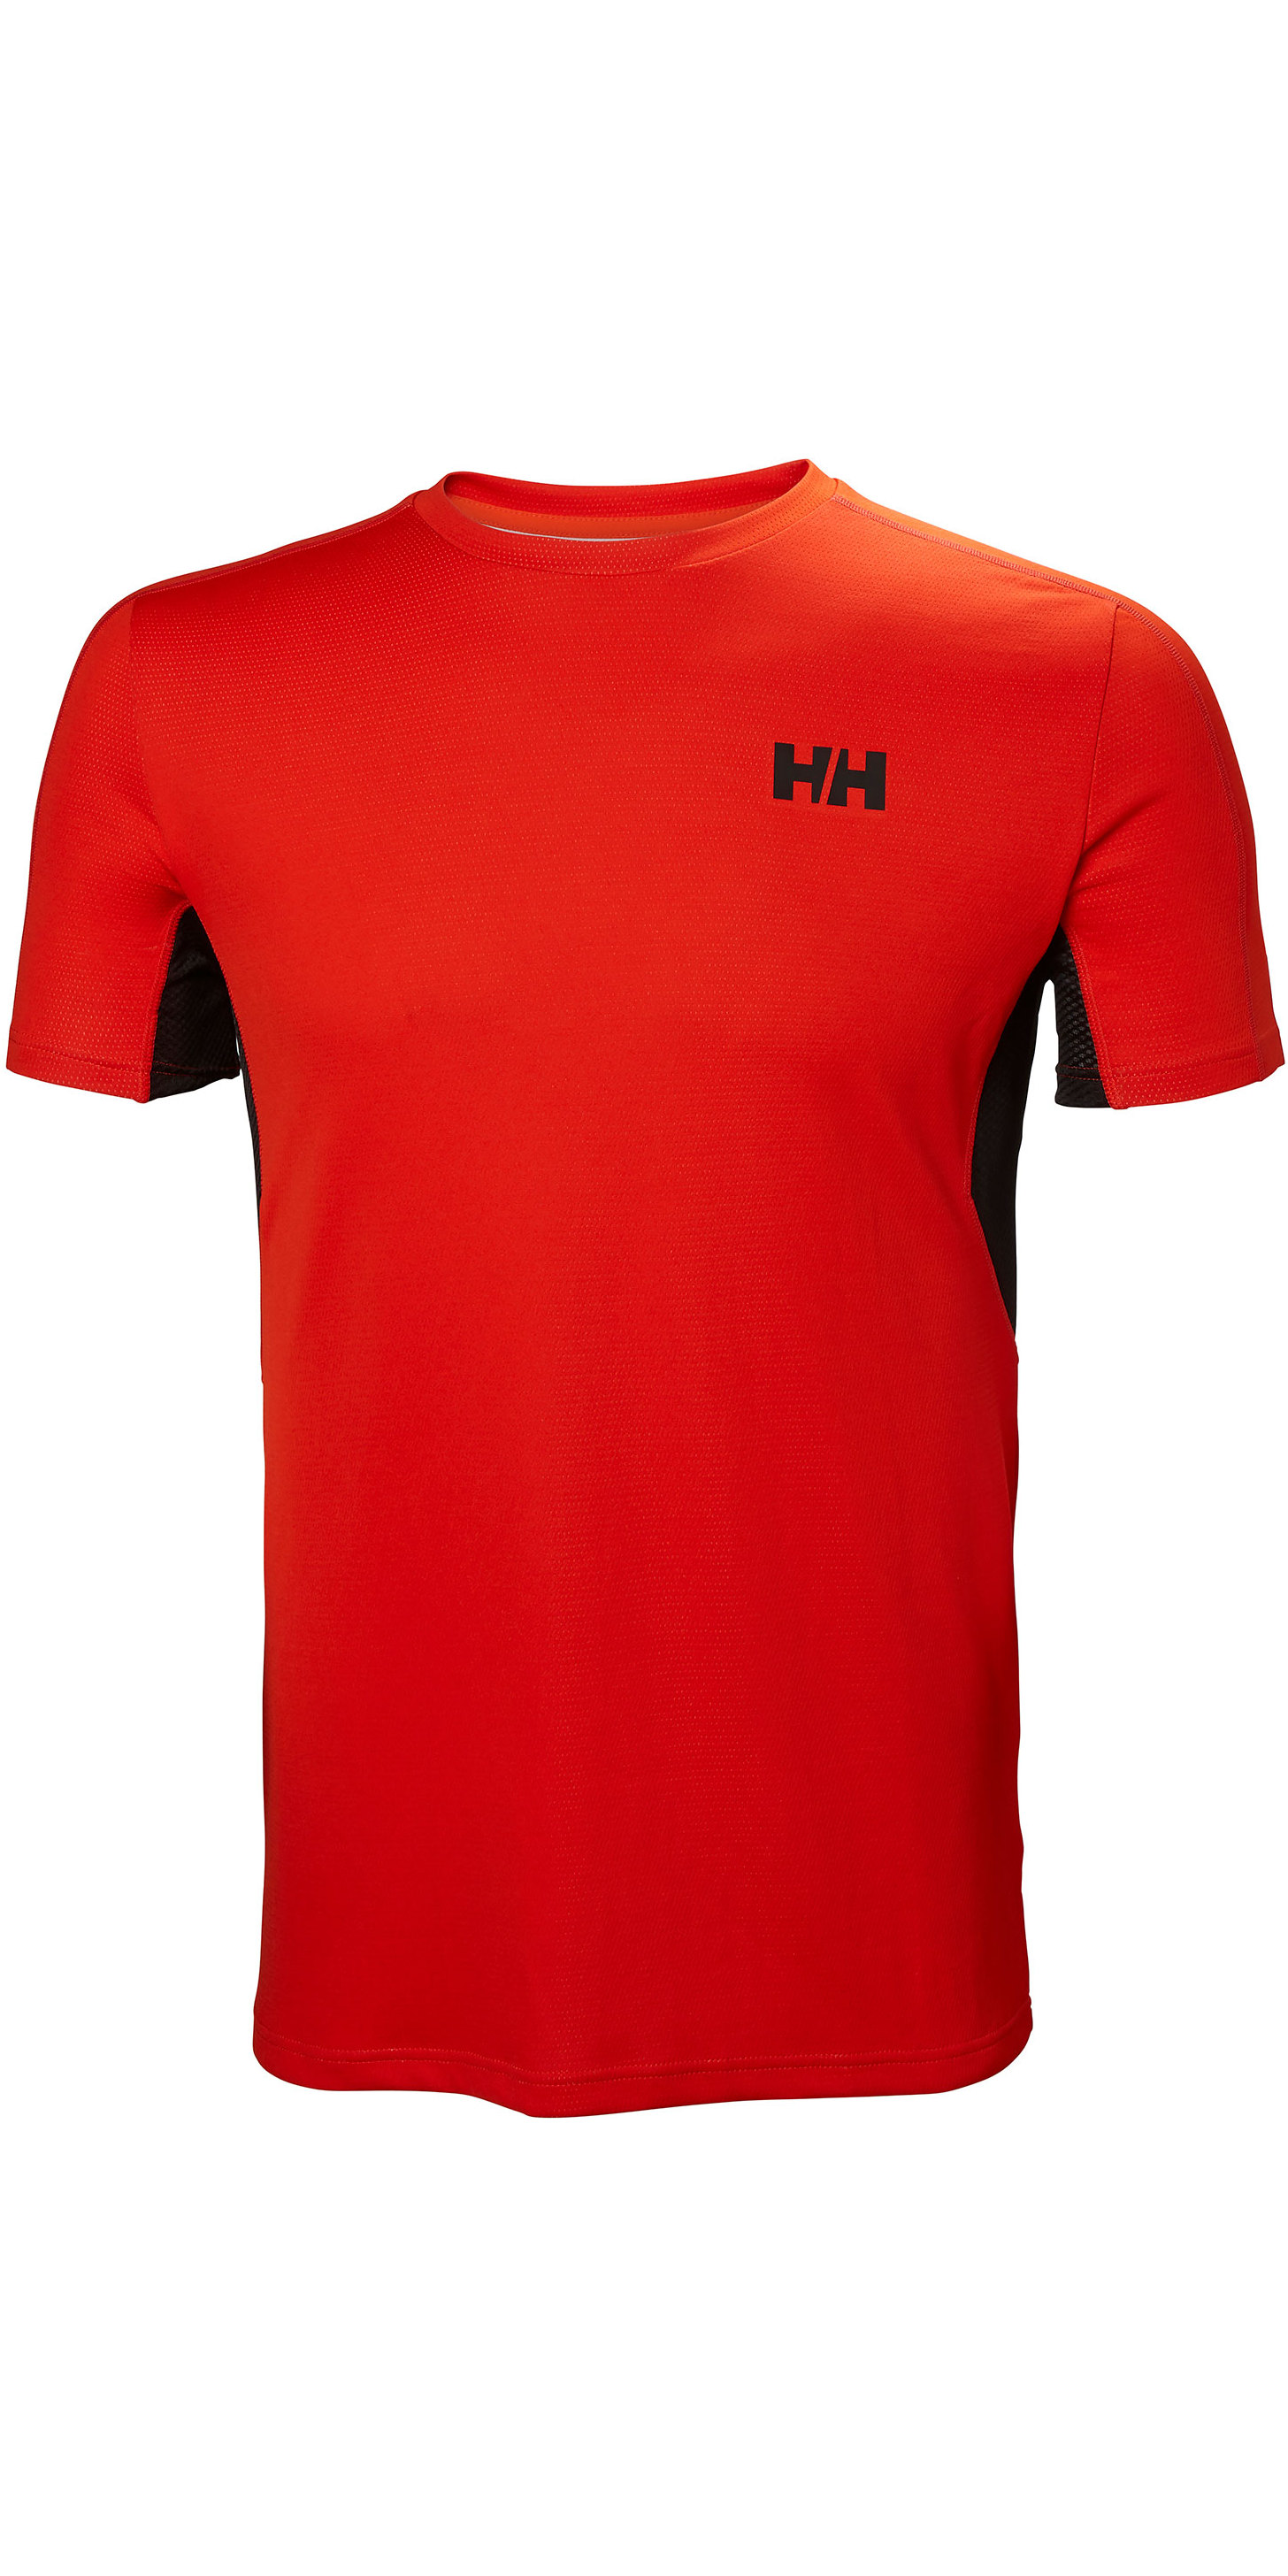 dcd2c1b53e 2019 Helly Hansen Mens Lifa Active Mesh T-shirt Cherry Tomato 49319 - Thermal  Base Layer | Wetsuit Outlet